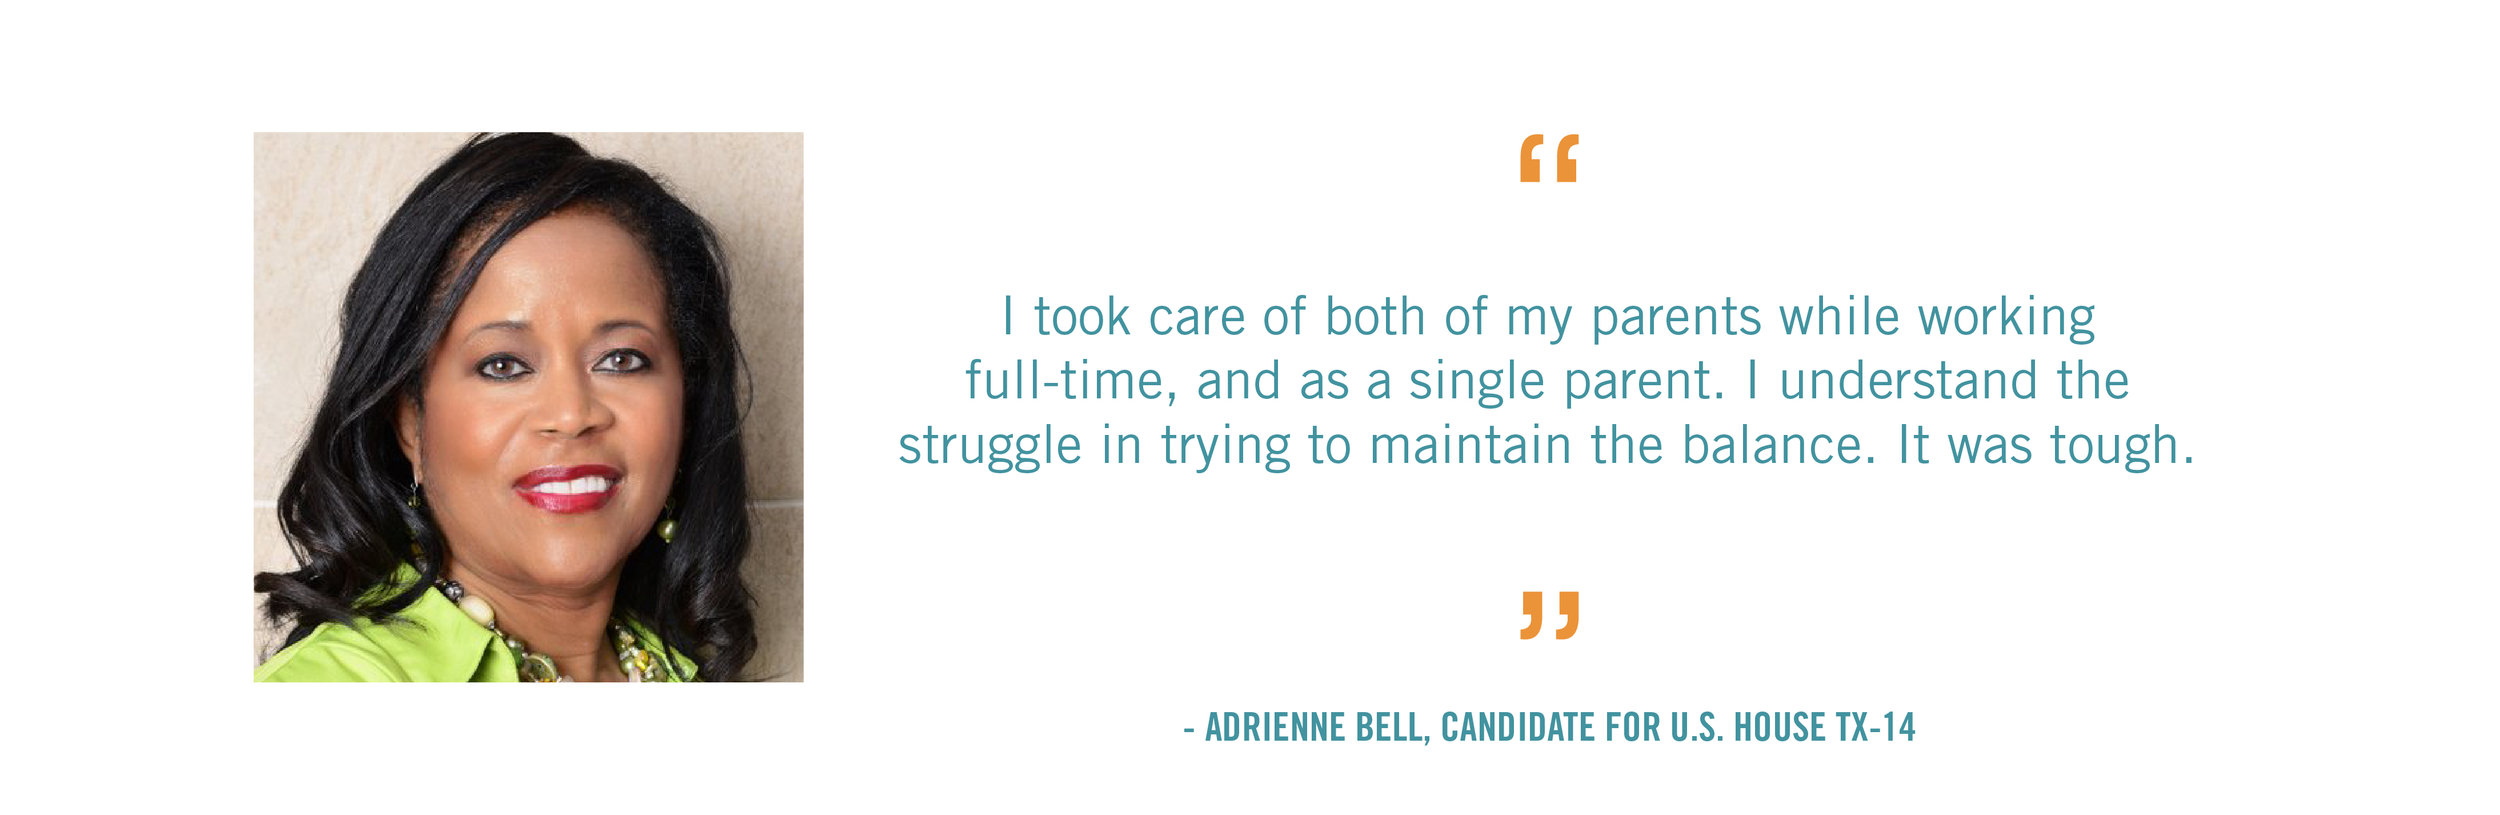 I took care of both of my parents while working full-time, and as a single parent. I understand the struggle in trying to maintain the balance. It was tough.